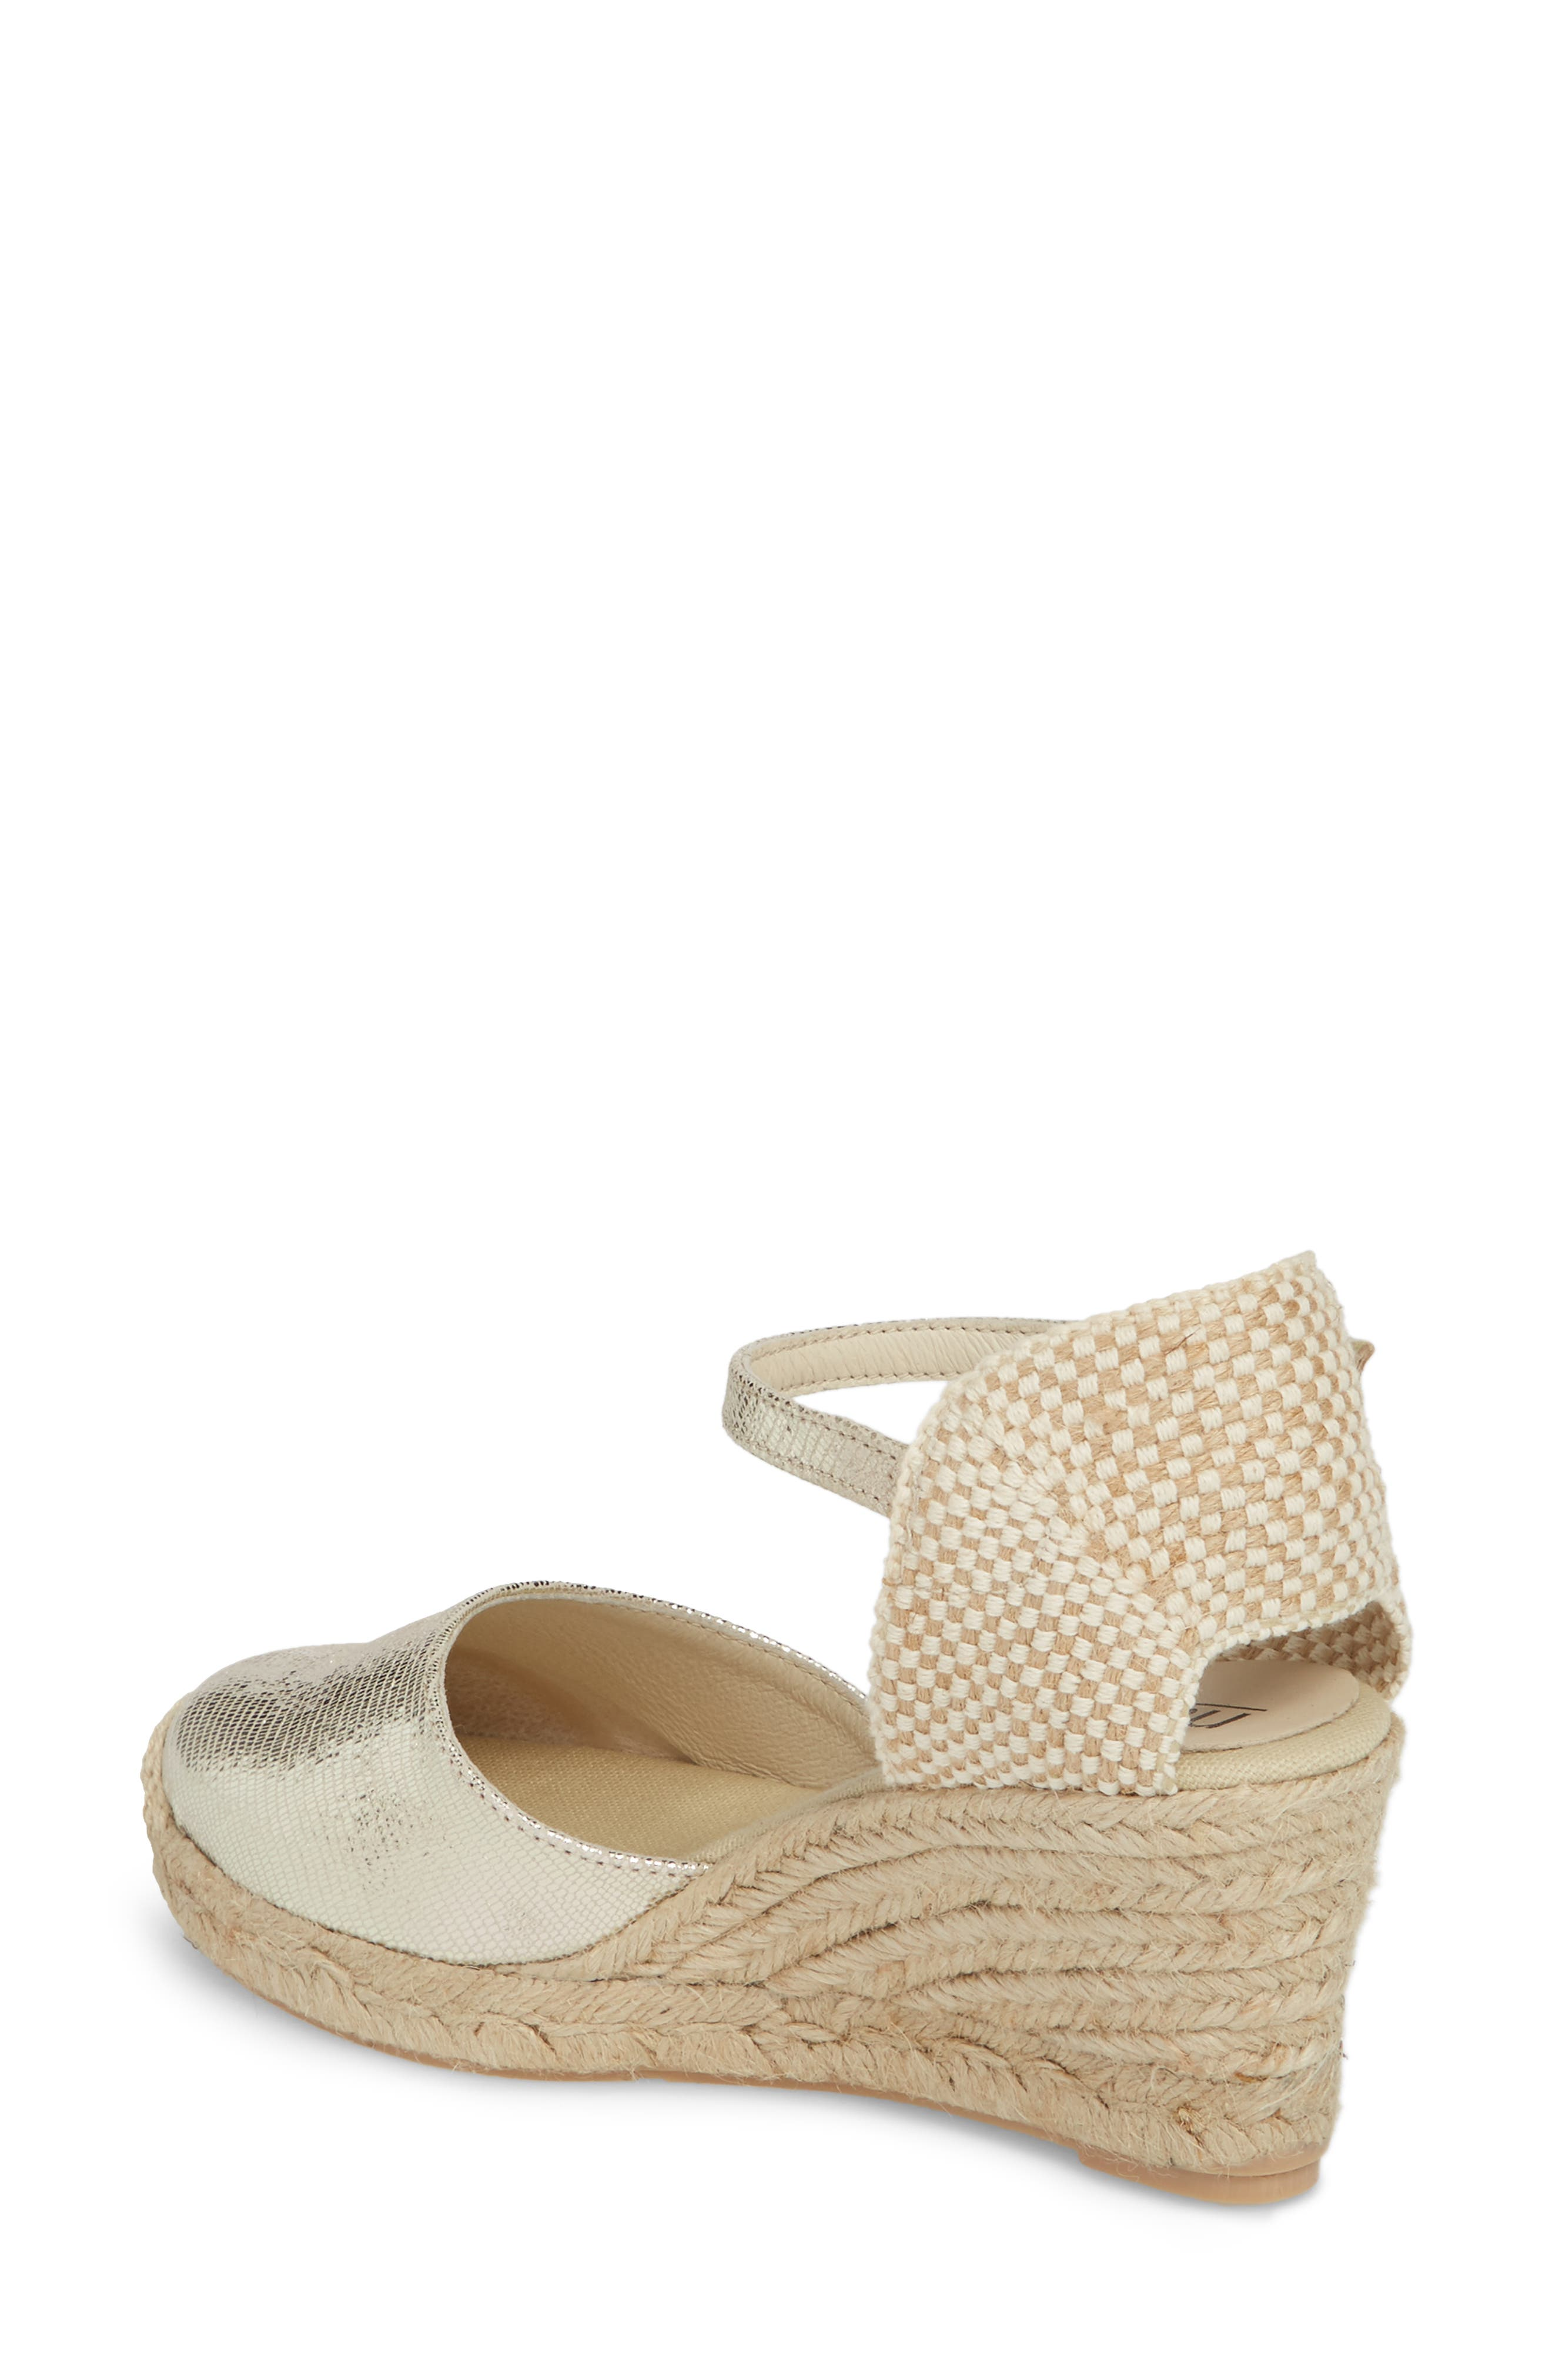 Europa Wedge Sandal,                             Alternate thumbnail 2, color,                             Gold Lizard Printed Leather